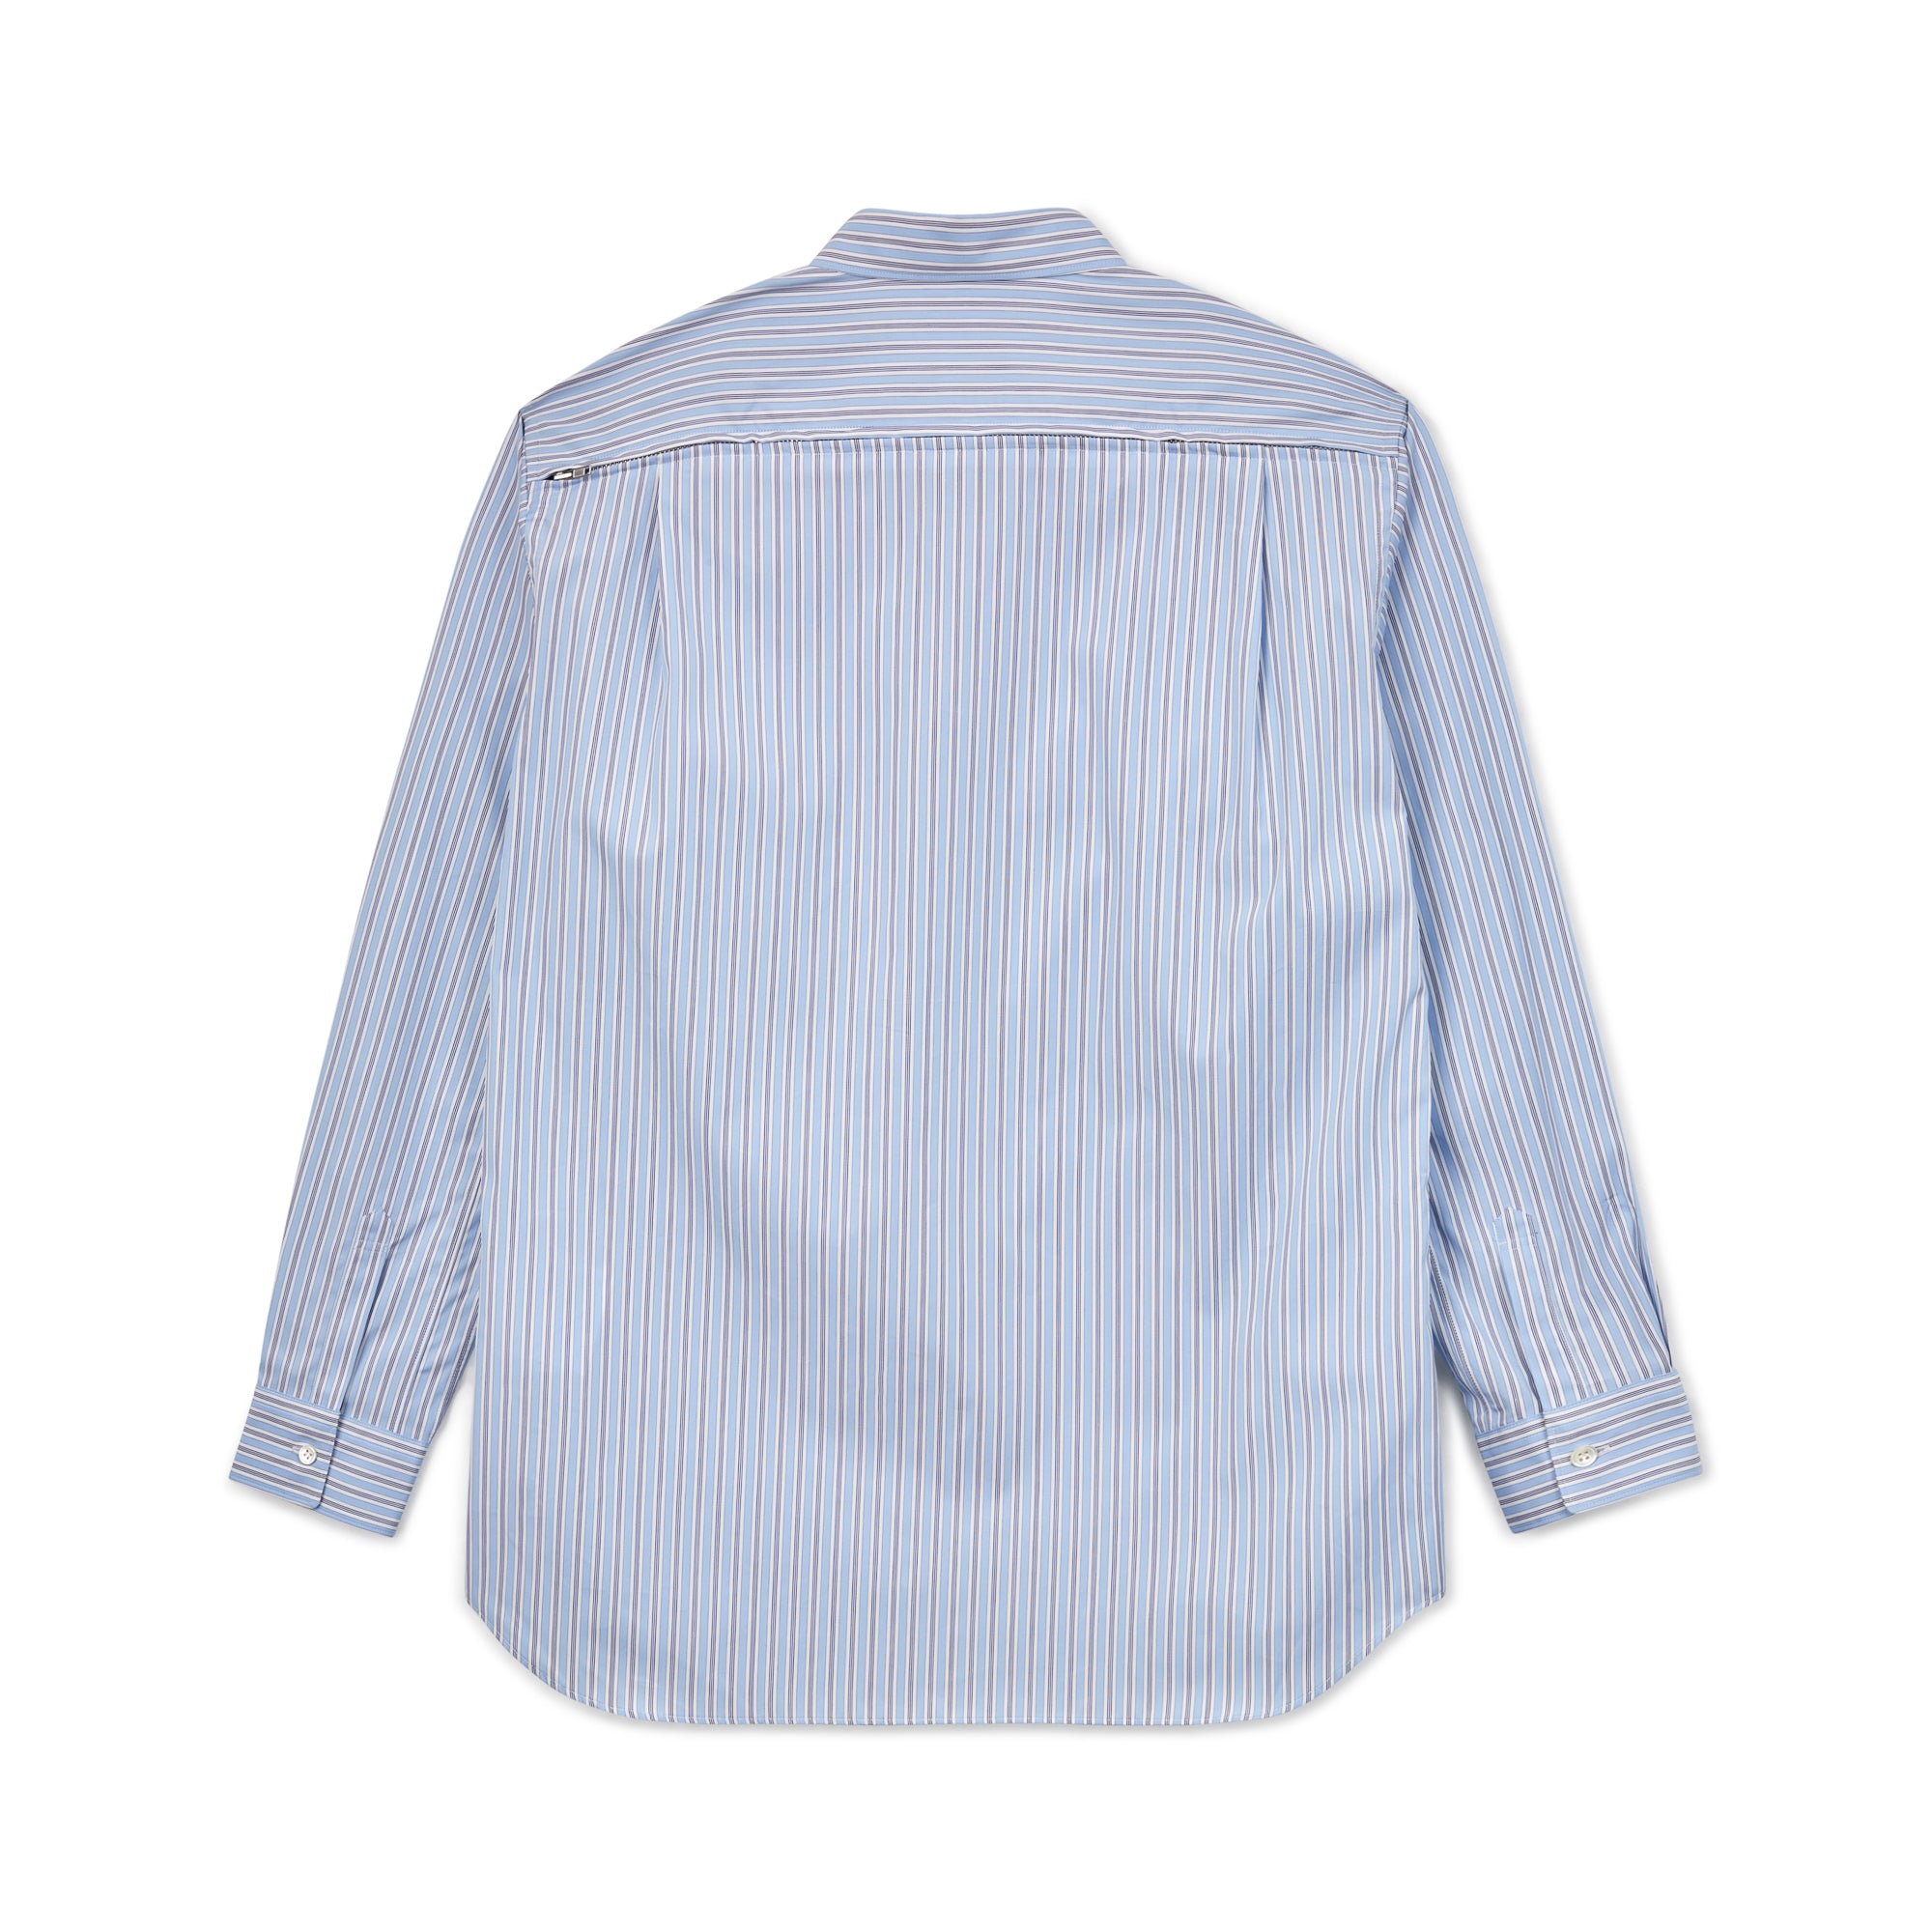 CDG Shirt Zipper Long Sleeve Shirt (Blue/Stripe)